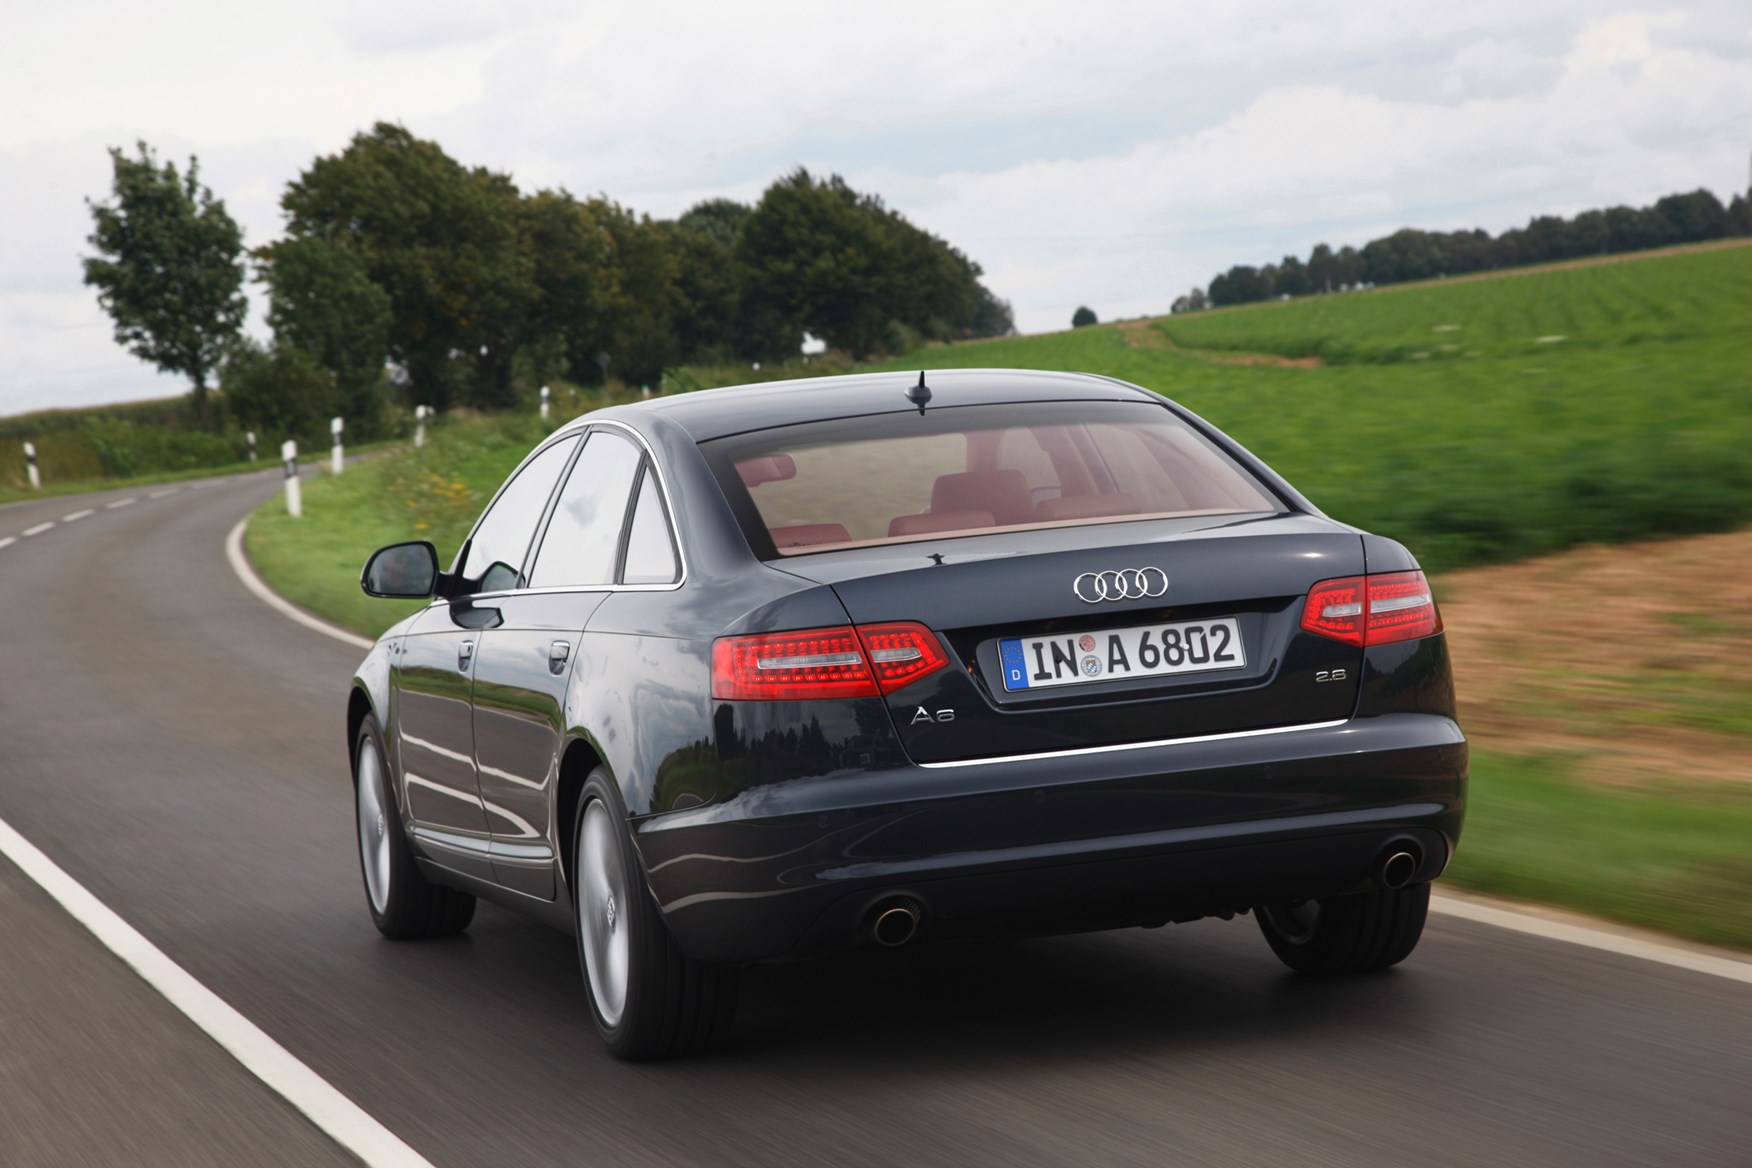 View all images of the audi a6 saloon 04 11